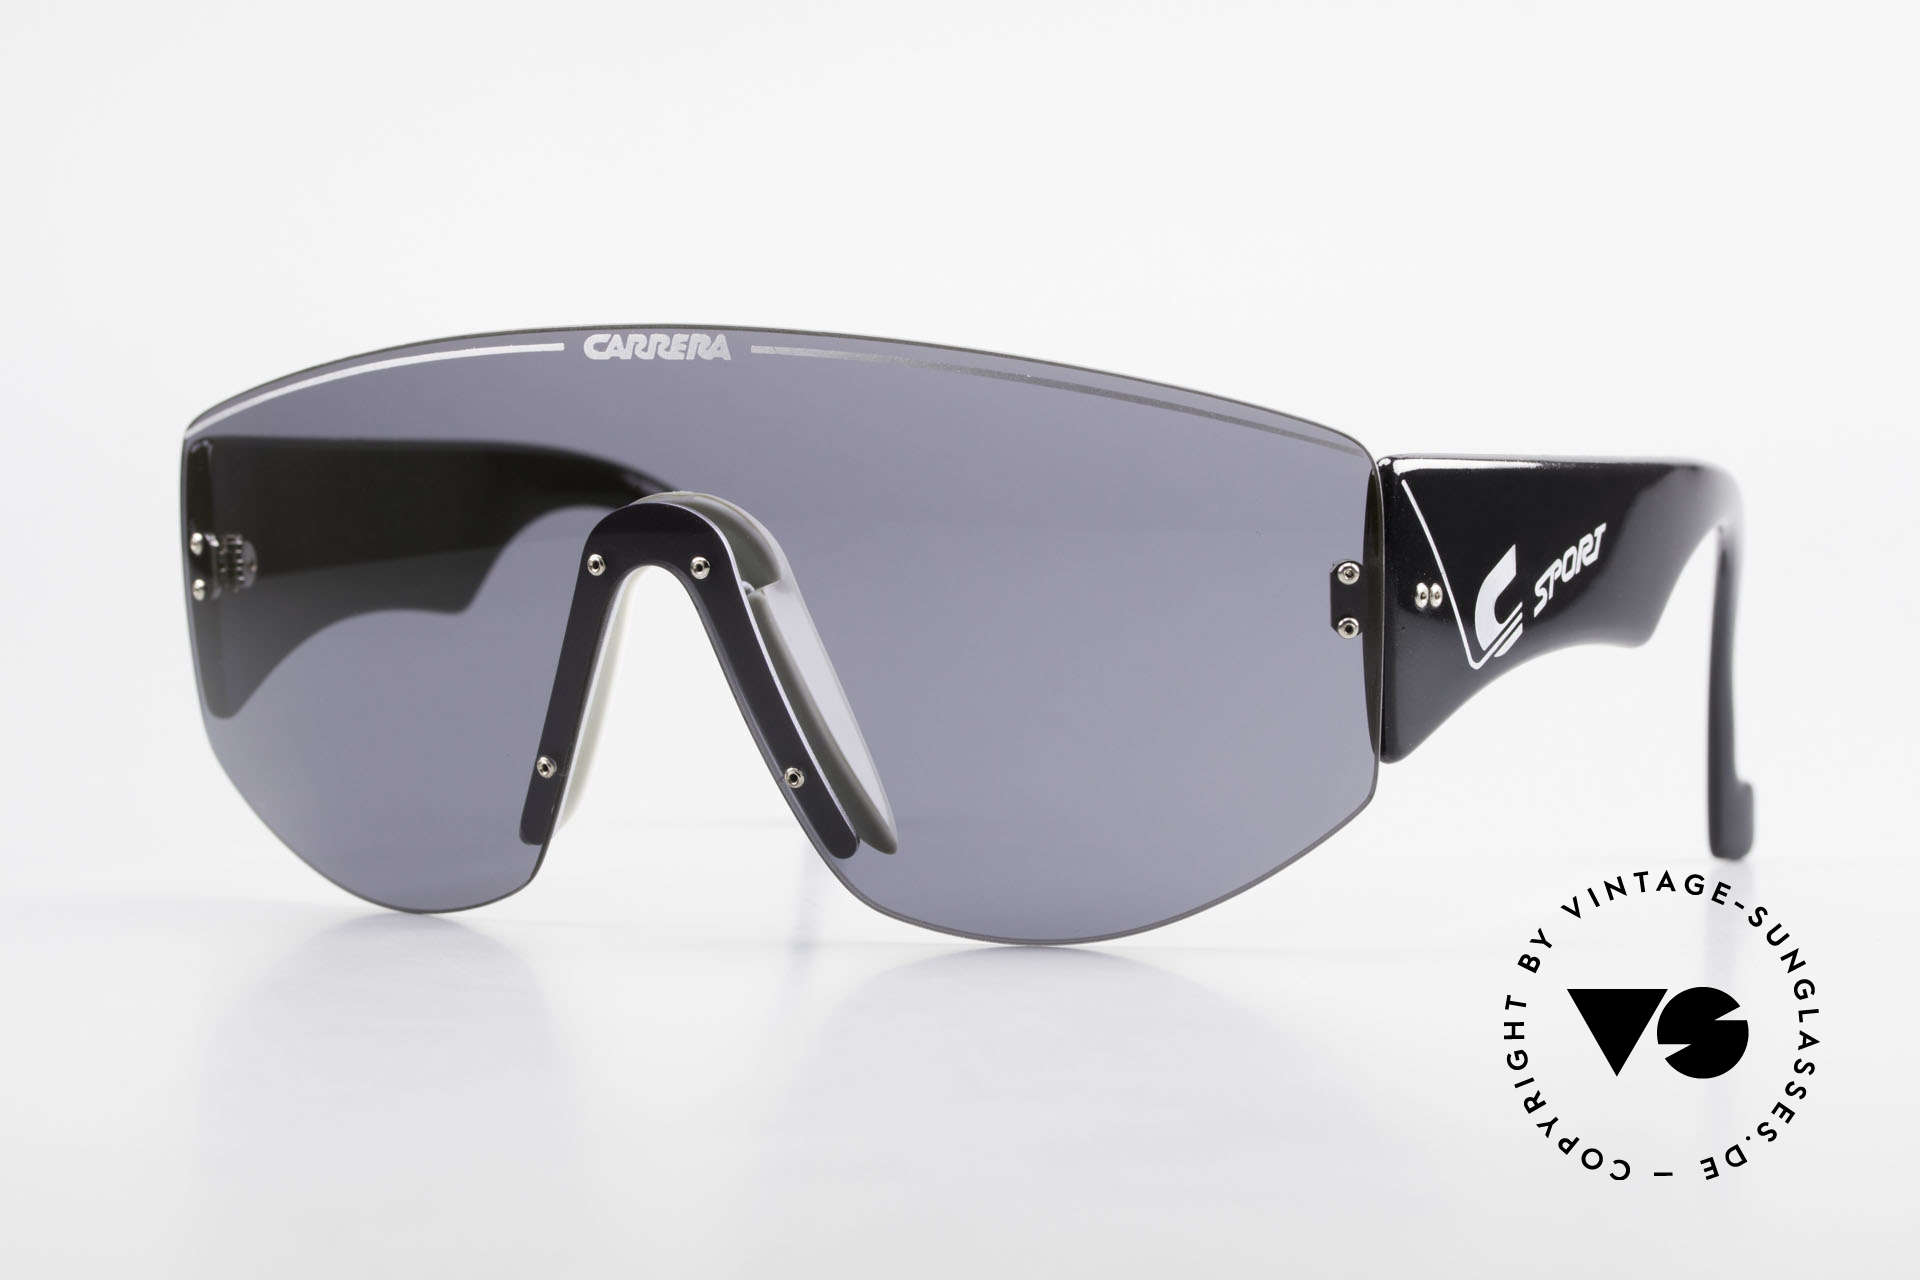 Carrera 5414 90's Sunglasses Sports Shades, vintage Carrera sport's sunglasses from the early 90's, Made for Men